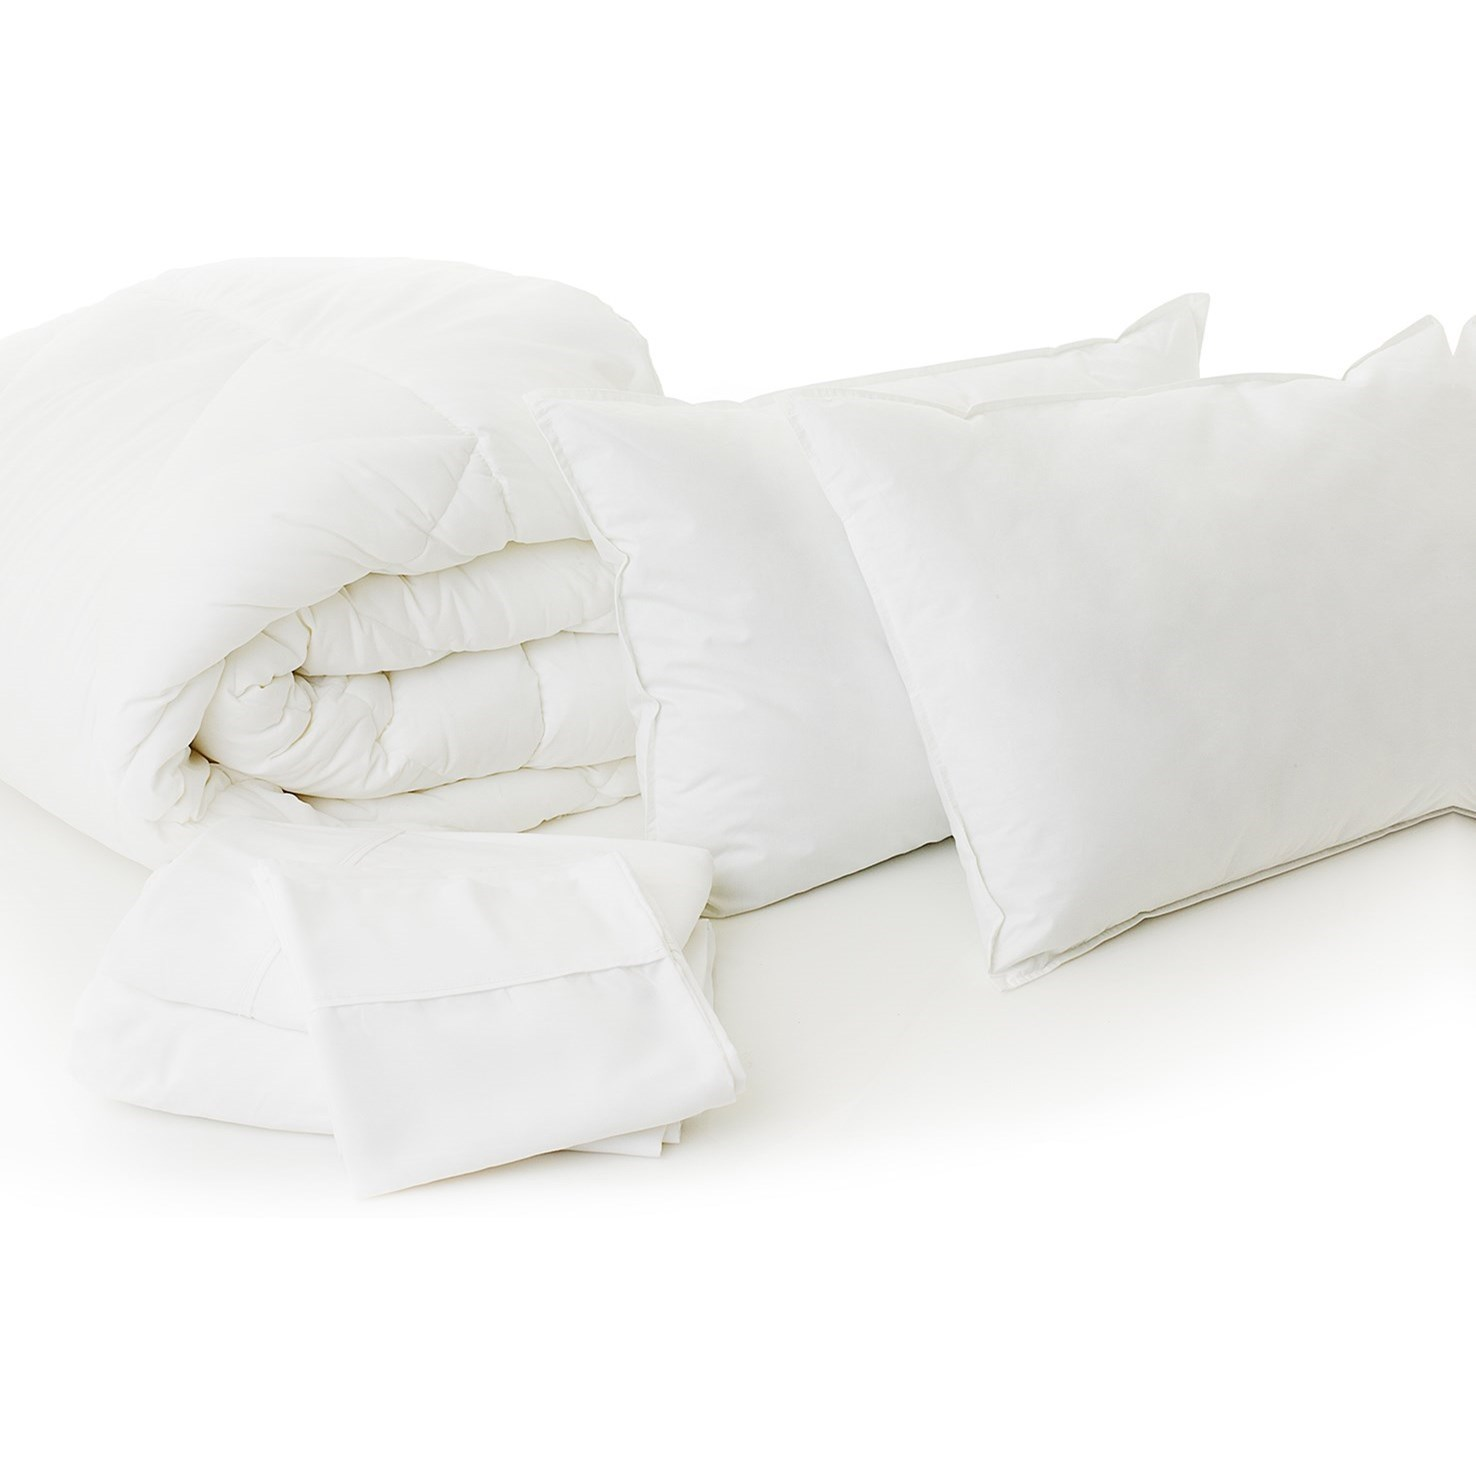 Malouf Bed in a Bag King Bed in a Bag  - Item Number: MA01KKBB